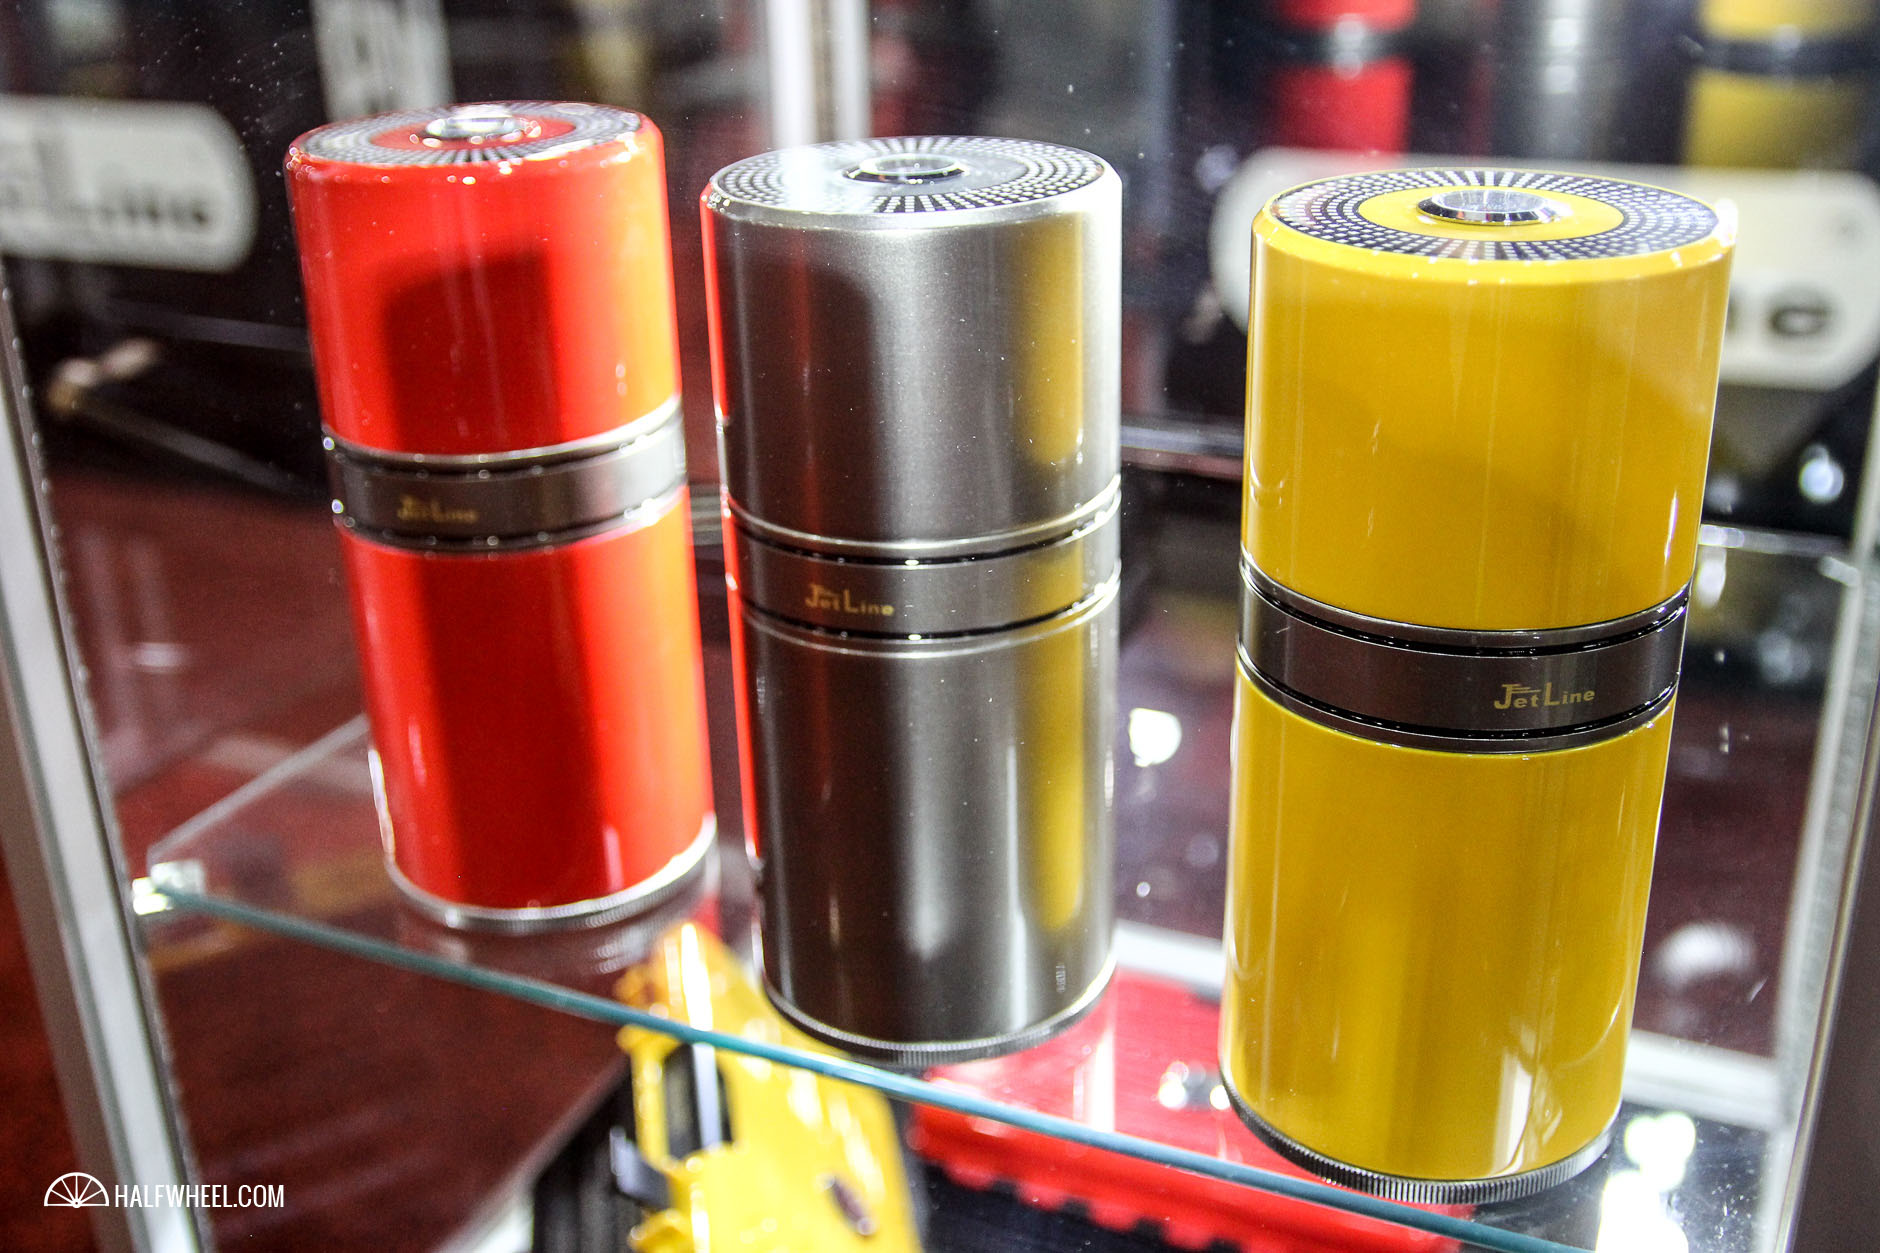 Jetline Argo canister closed IPCPR 2016